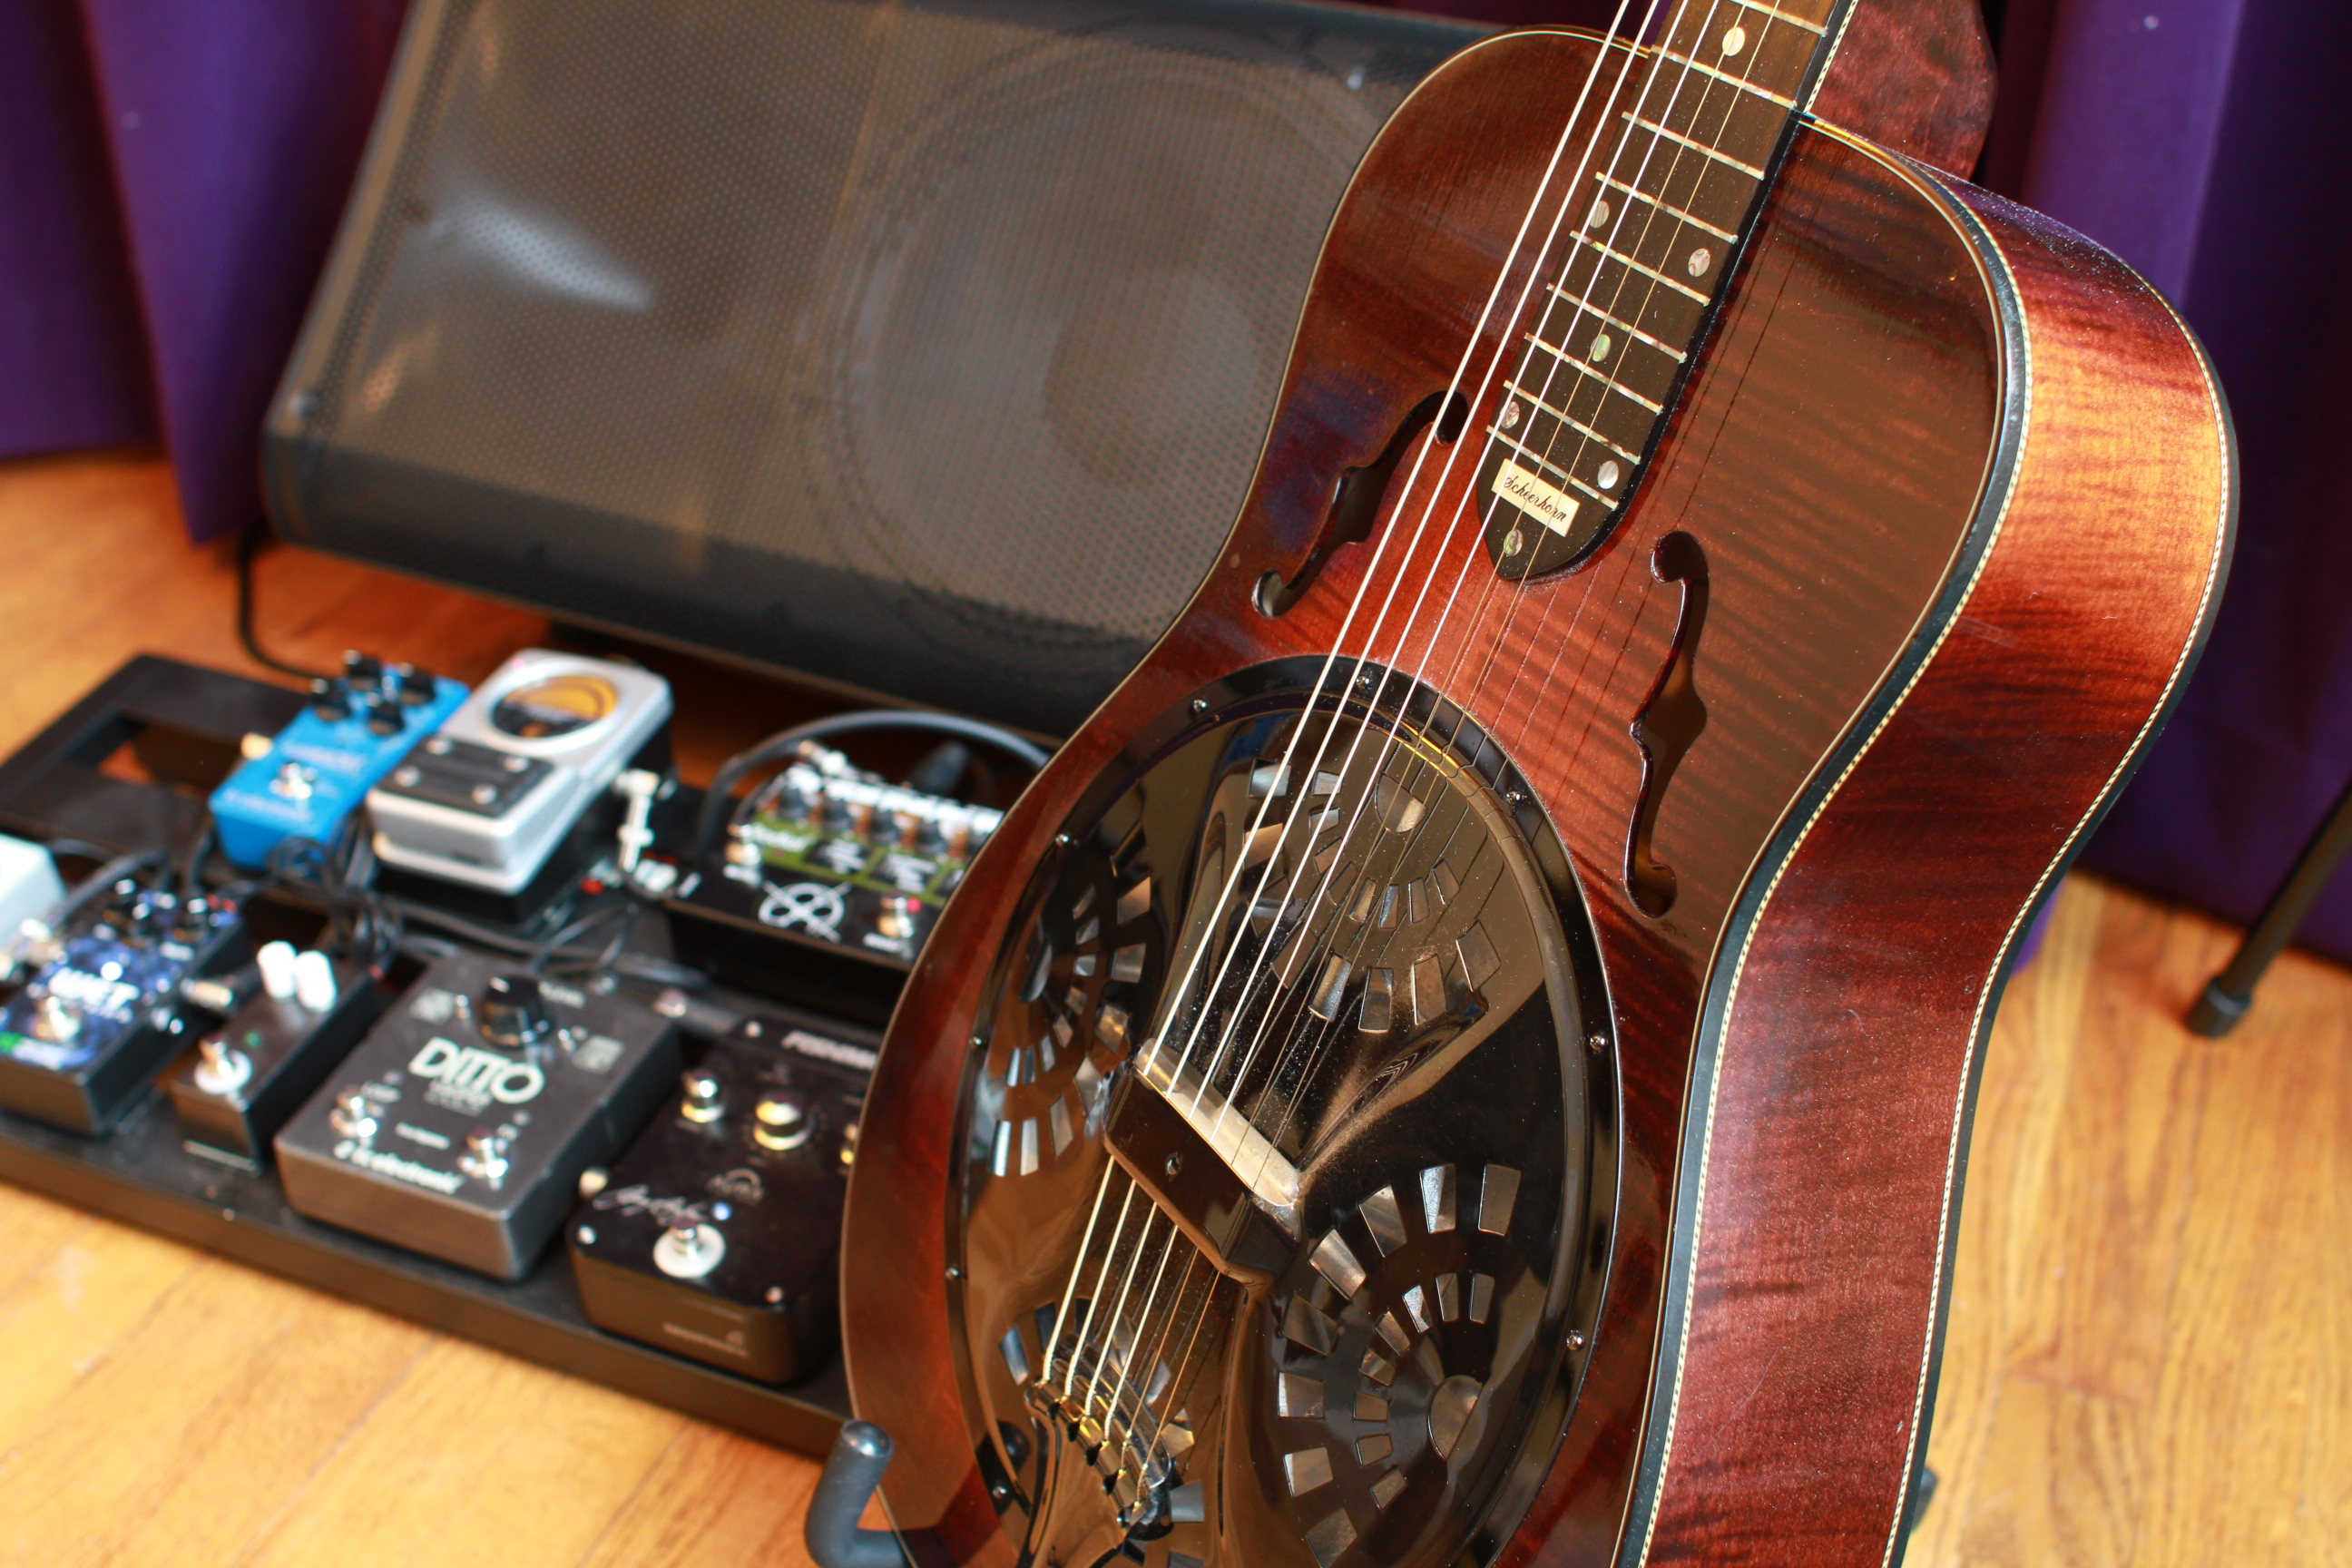 When I Got Started An OMI Dobro Was The Only Choice In Guitars Pickups For Resonator Guitar Were Poorly Designed Or Non Existant